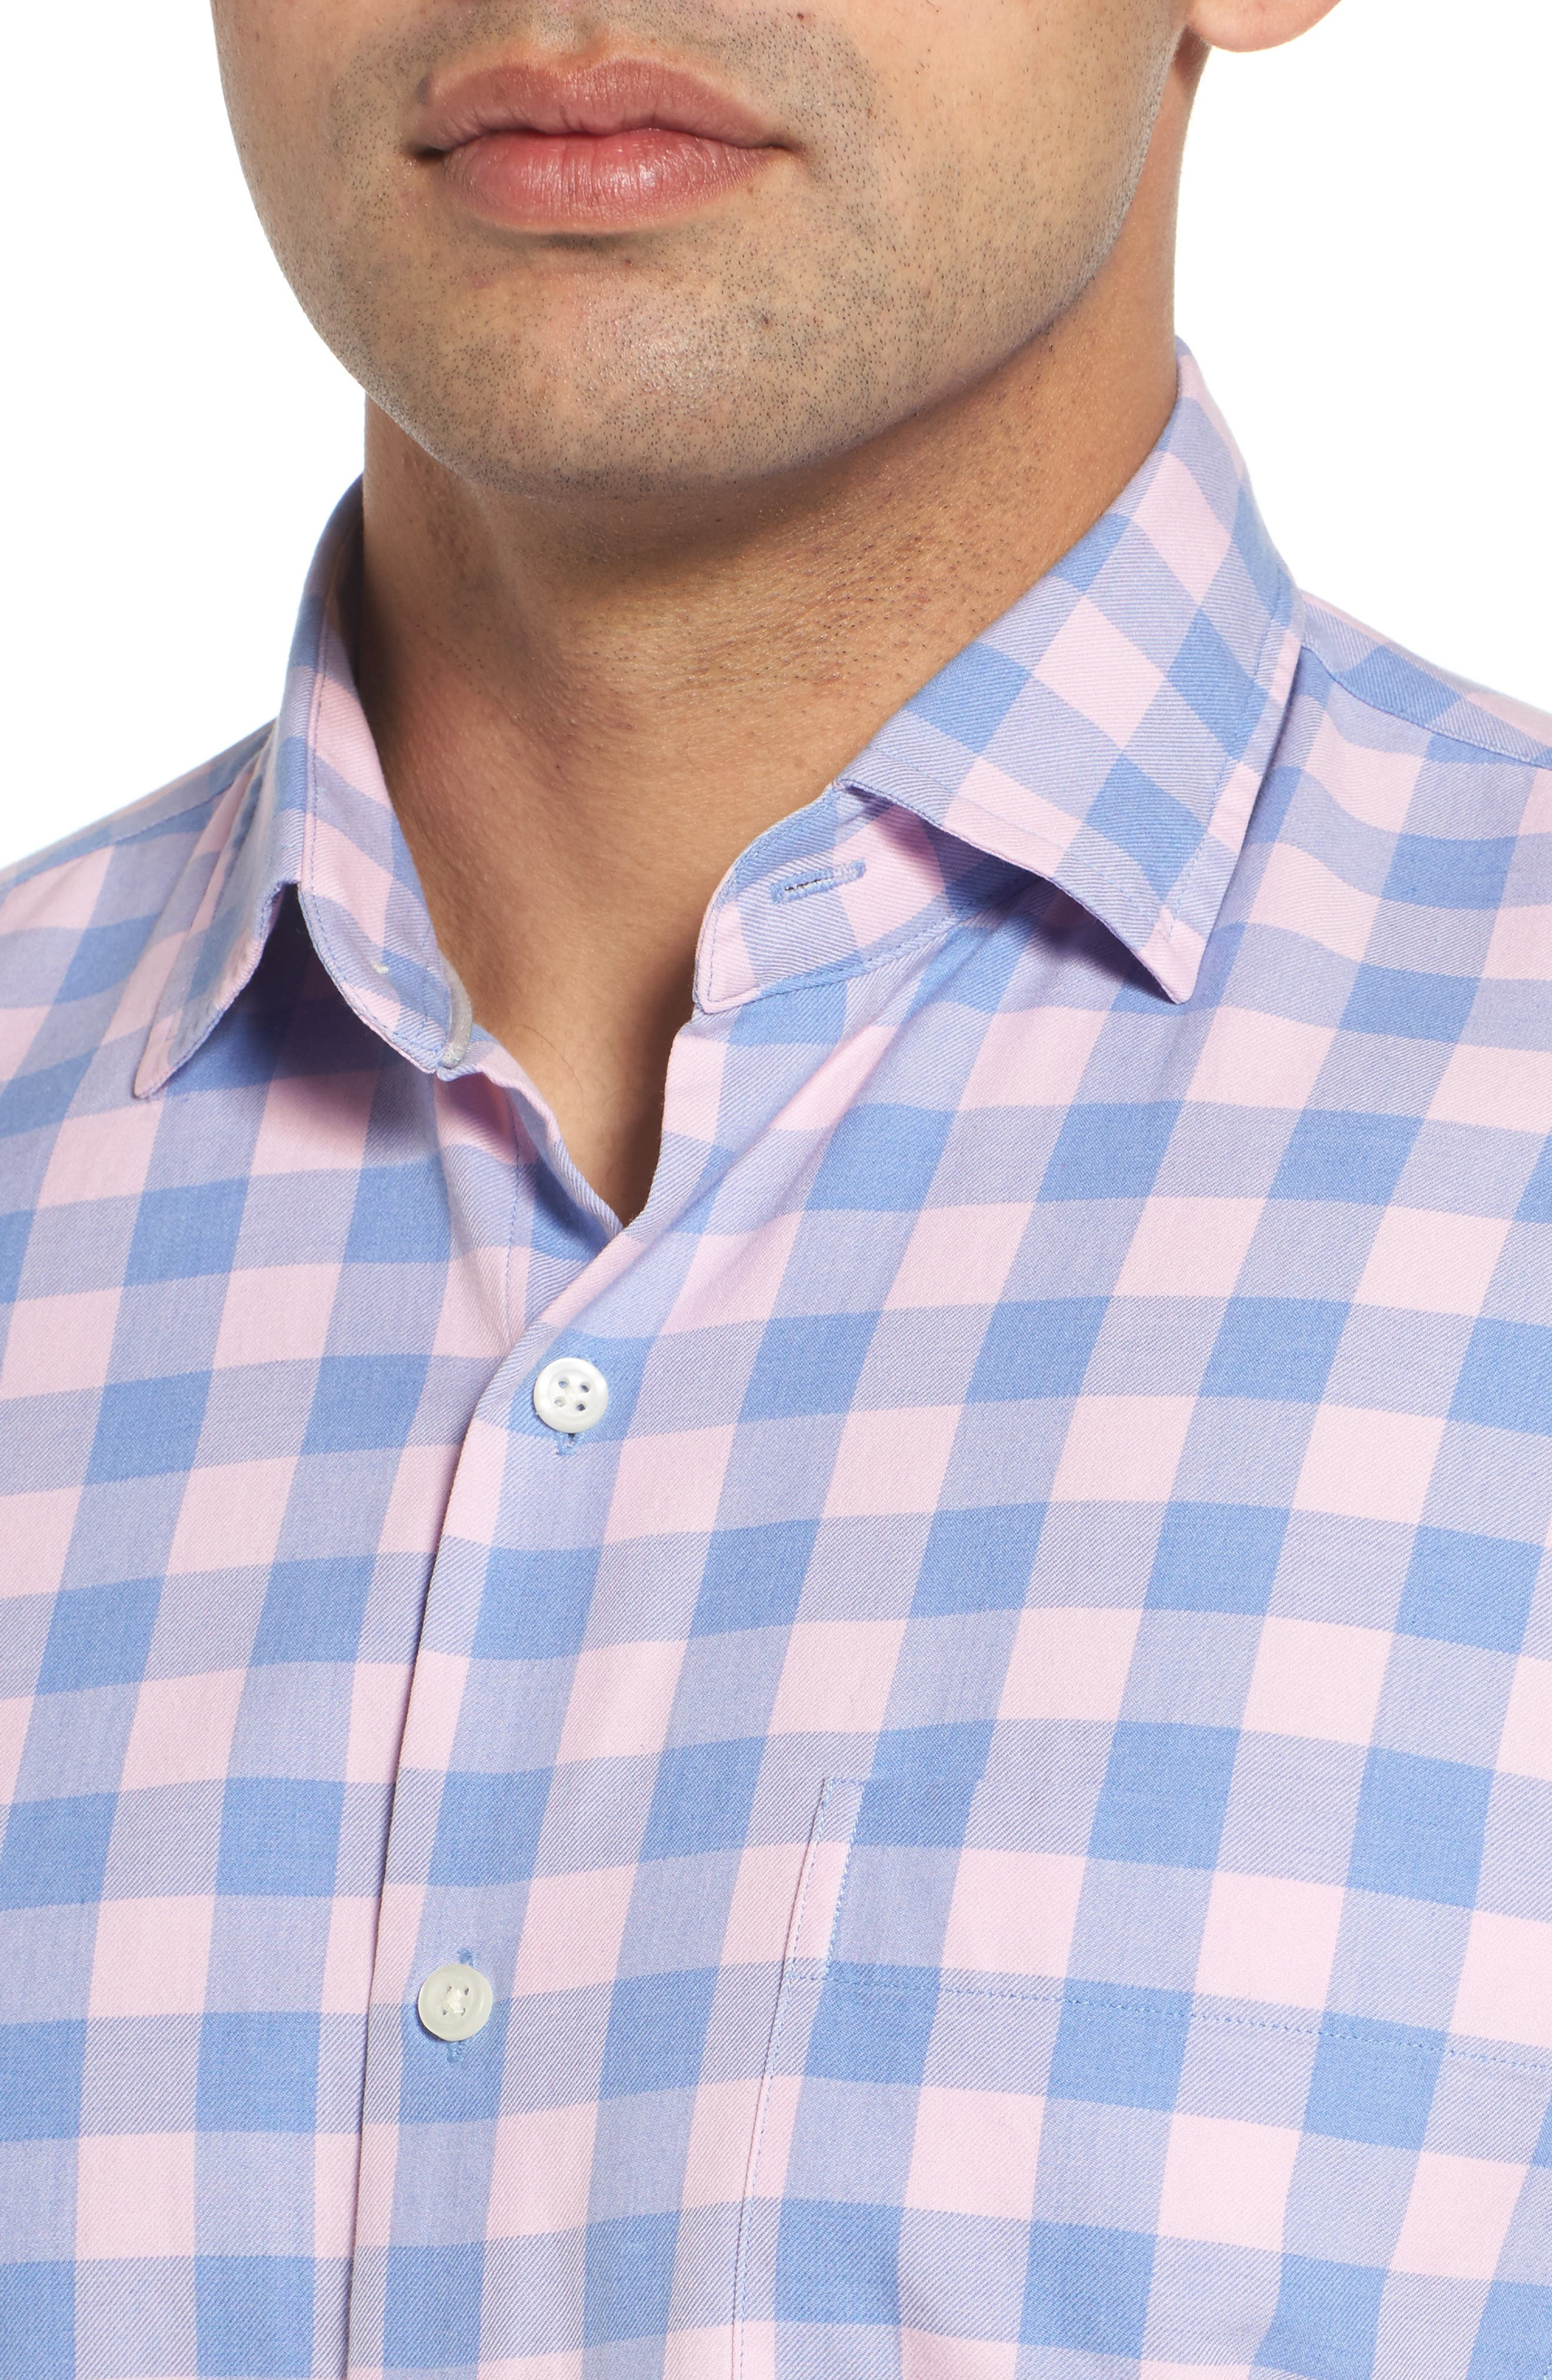 Seaglass Gingham Check Sport Shirt,                             Alternate thumbnail 4, color,                             407